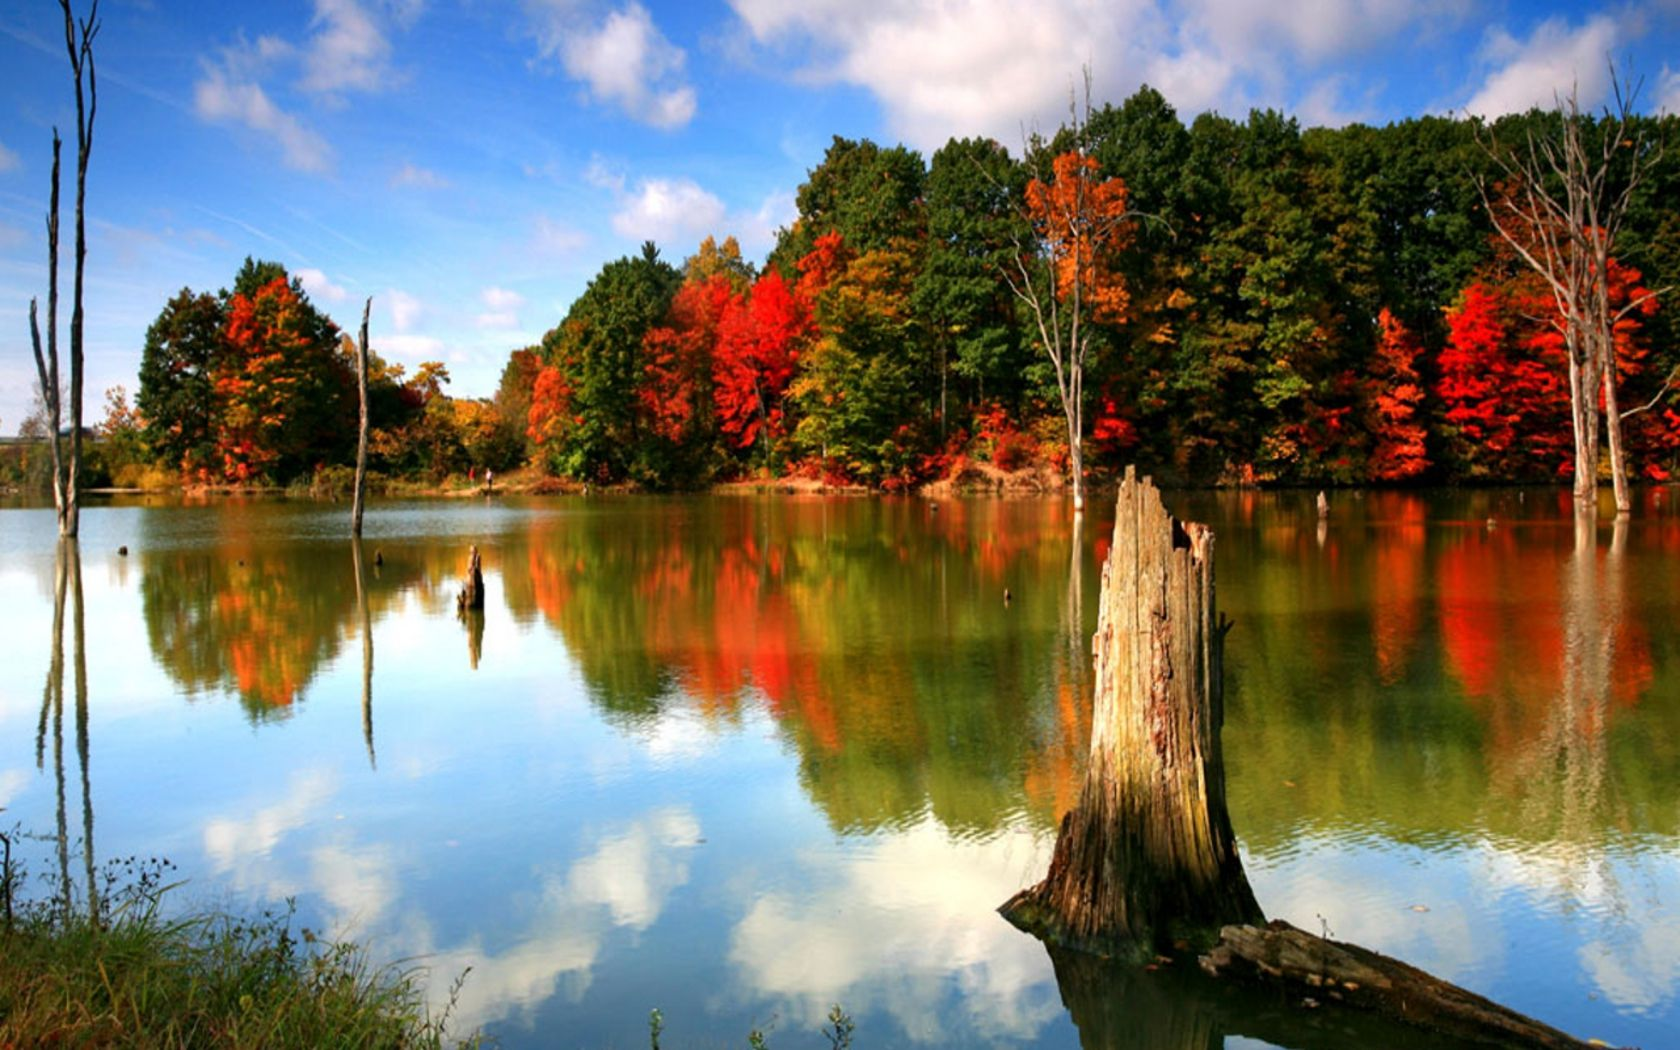 autumn | Autumn Wallpaper 006, Free Wallpapers, Free Desktop Wallpapers, HD ... | The colors of ...